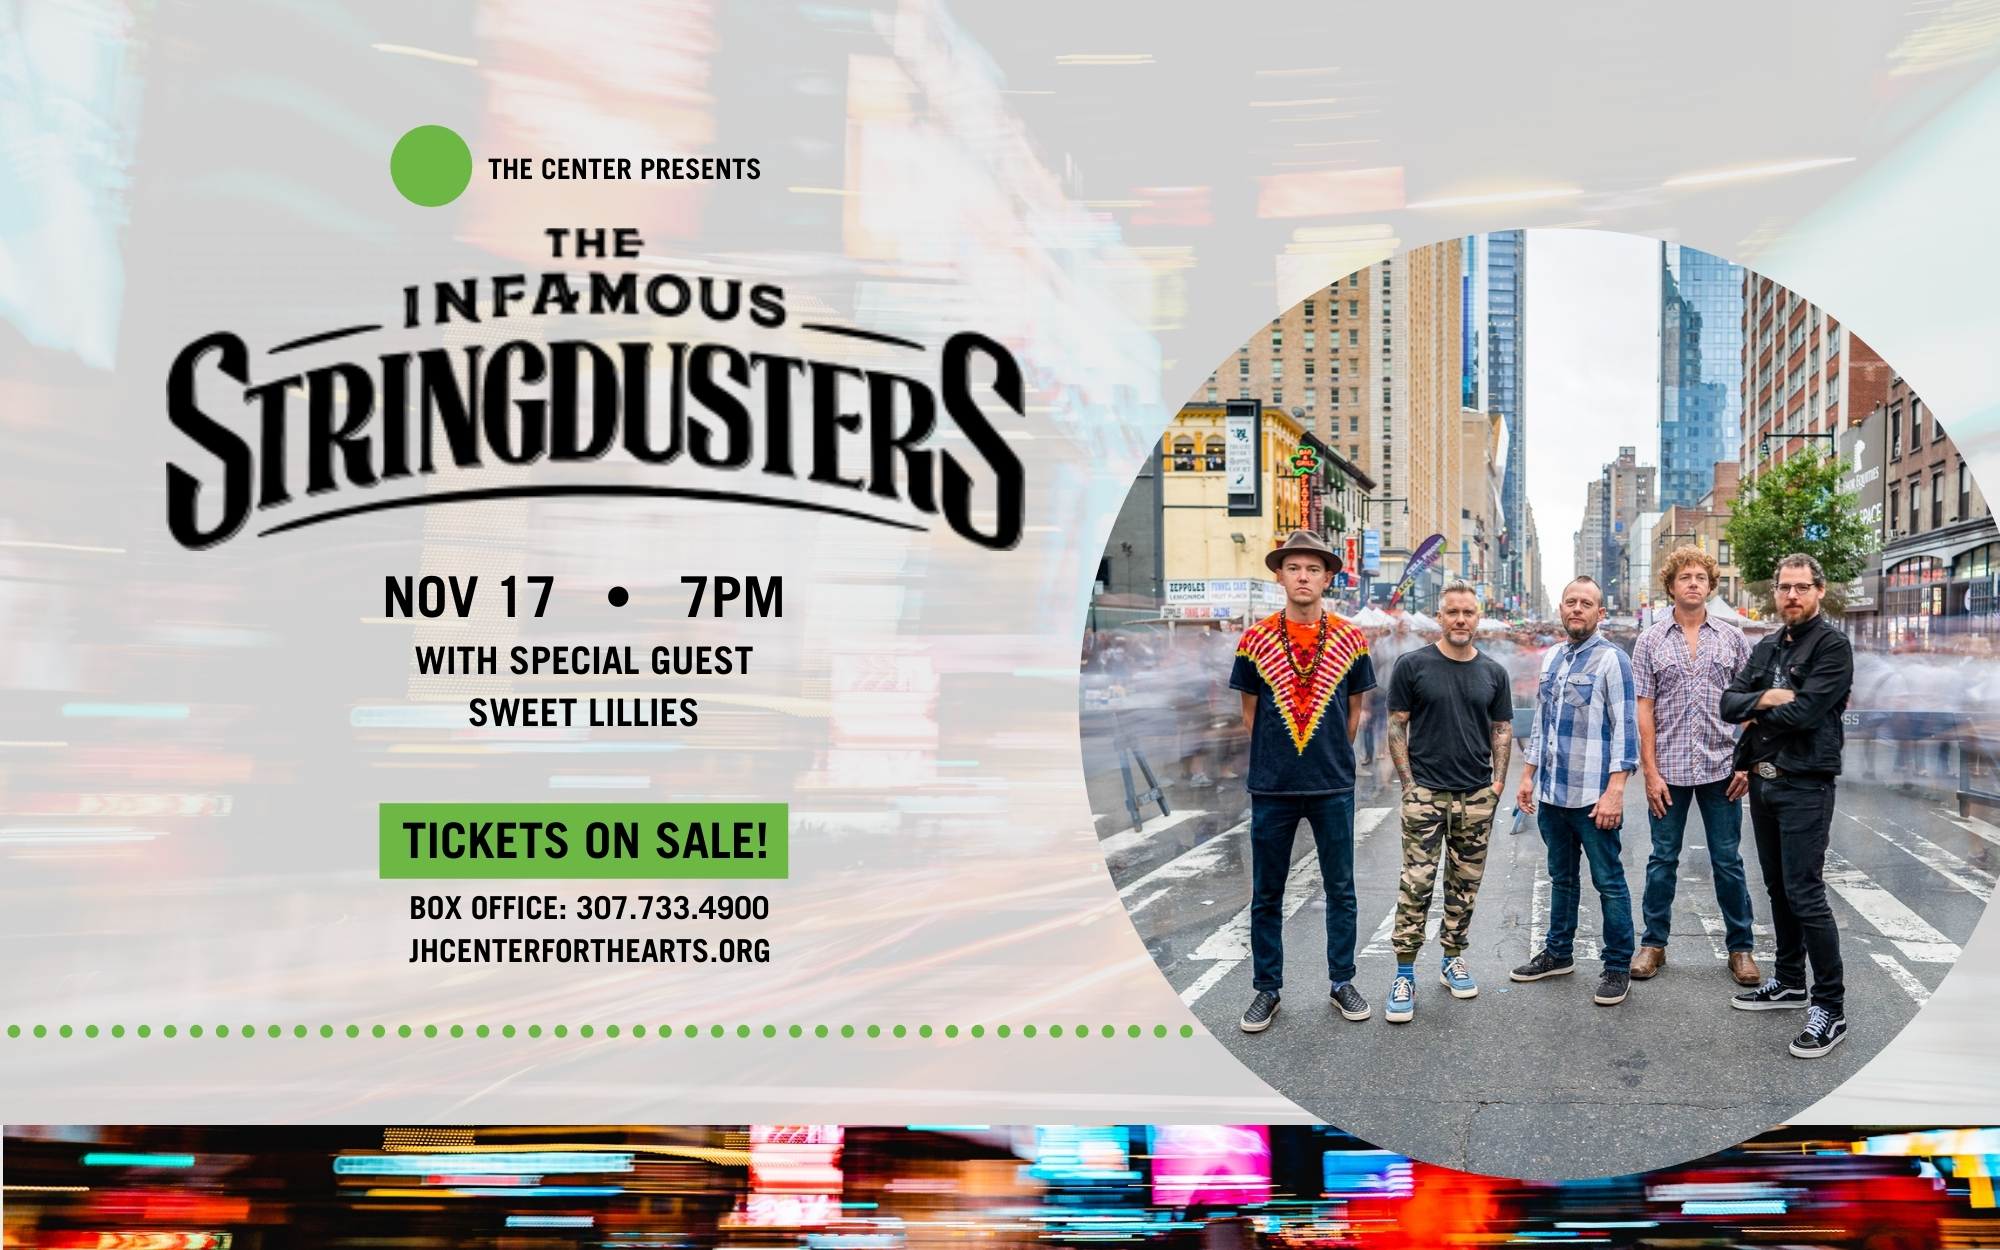 THE INFAMOUS STRINGDUSTERS WITH SPECIAL GUEST SWEET LILLIES